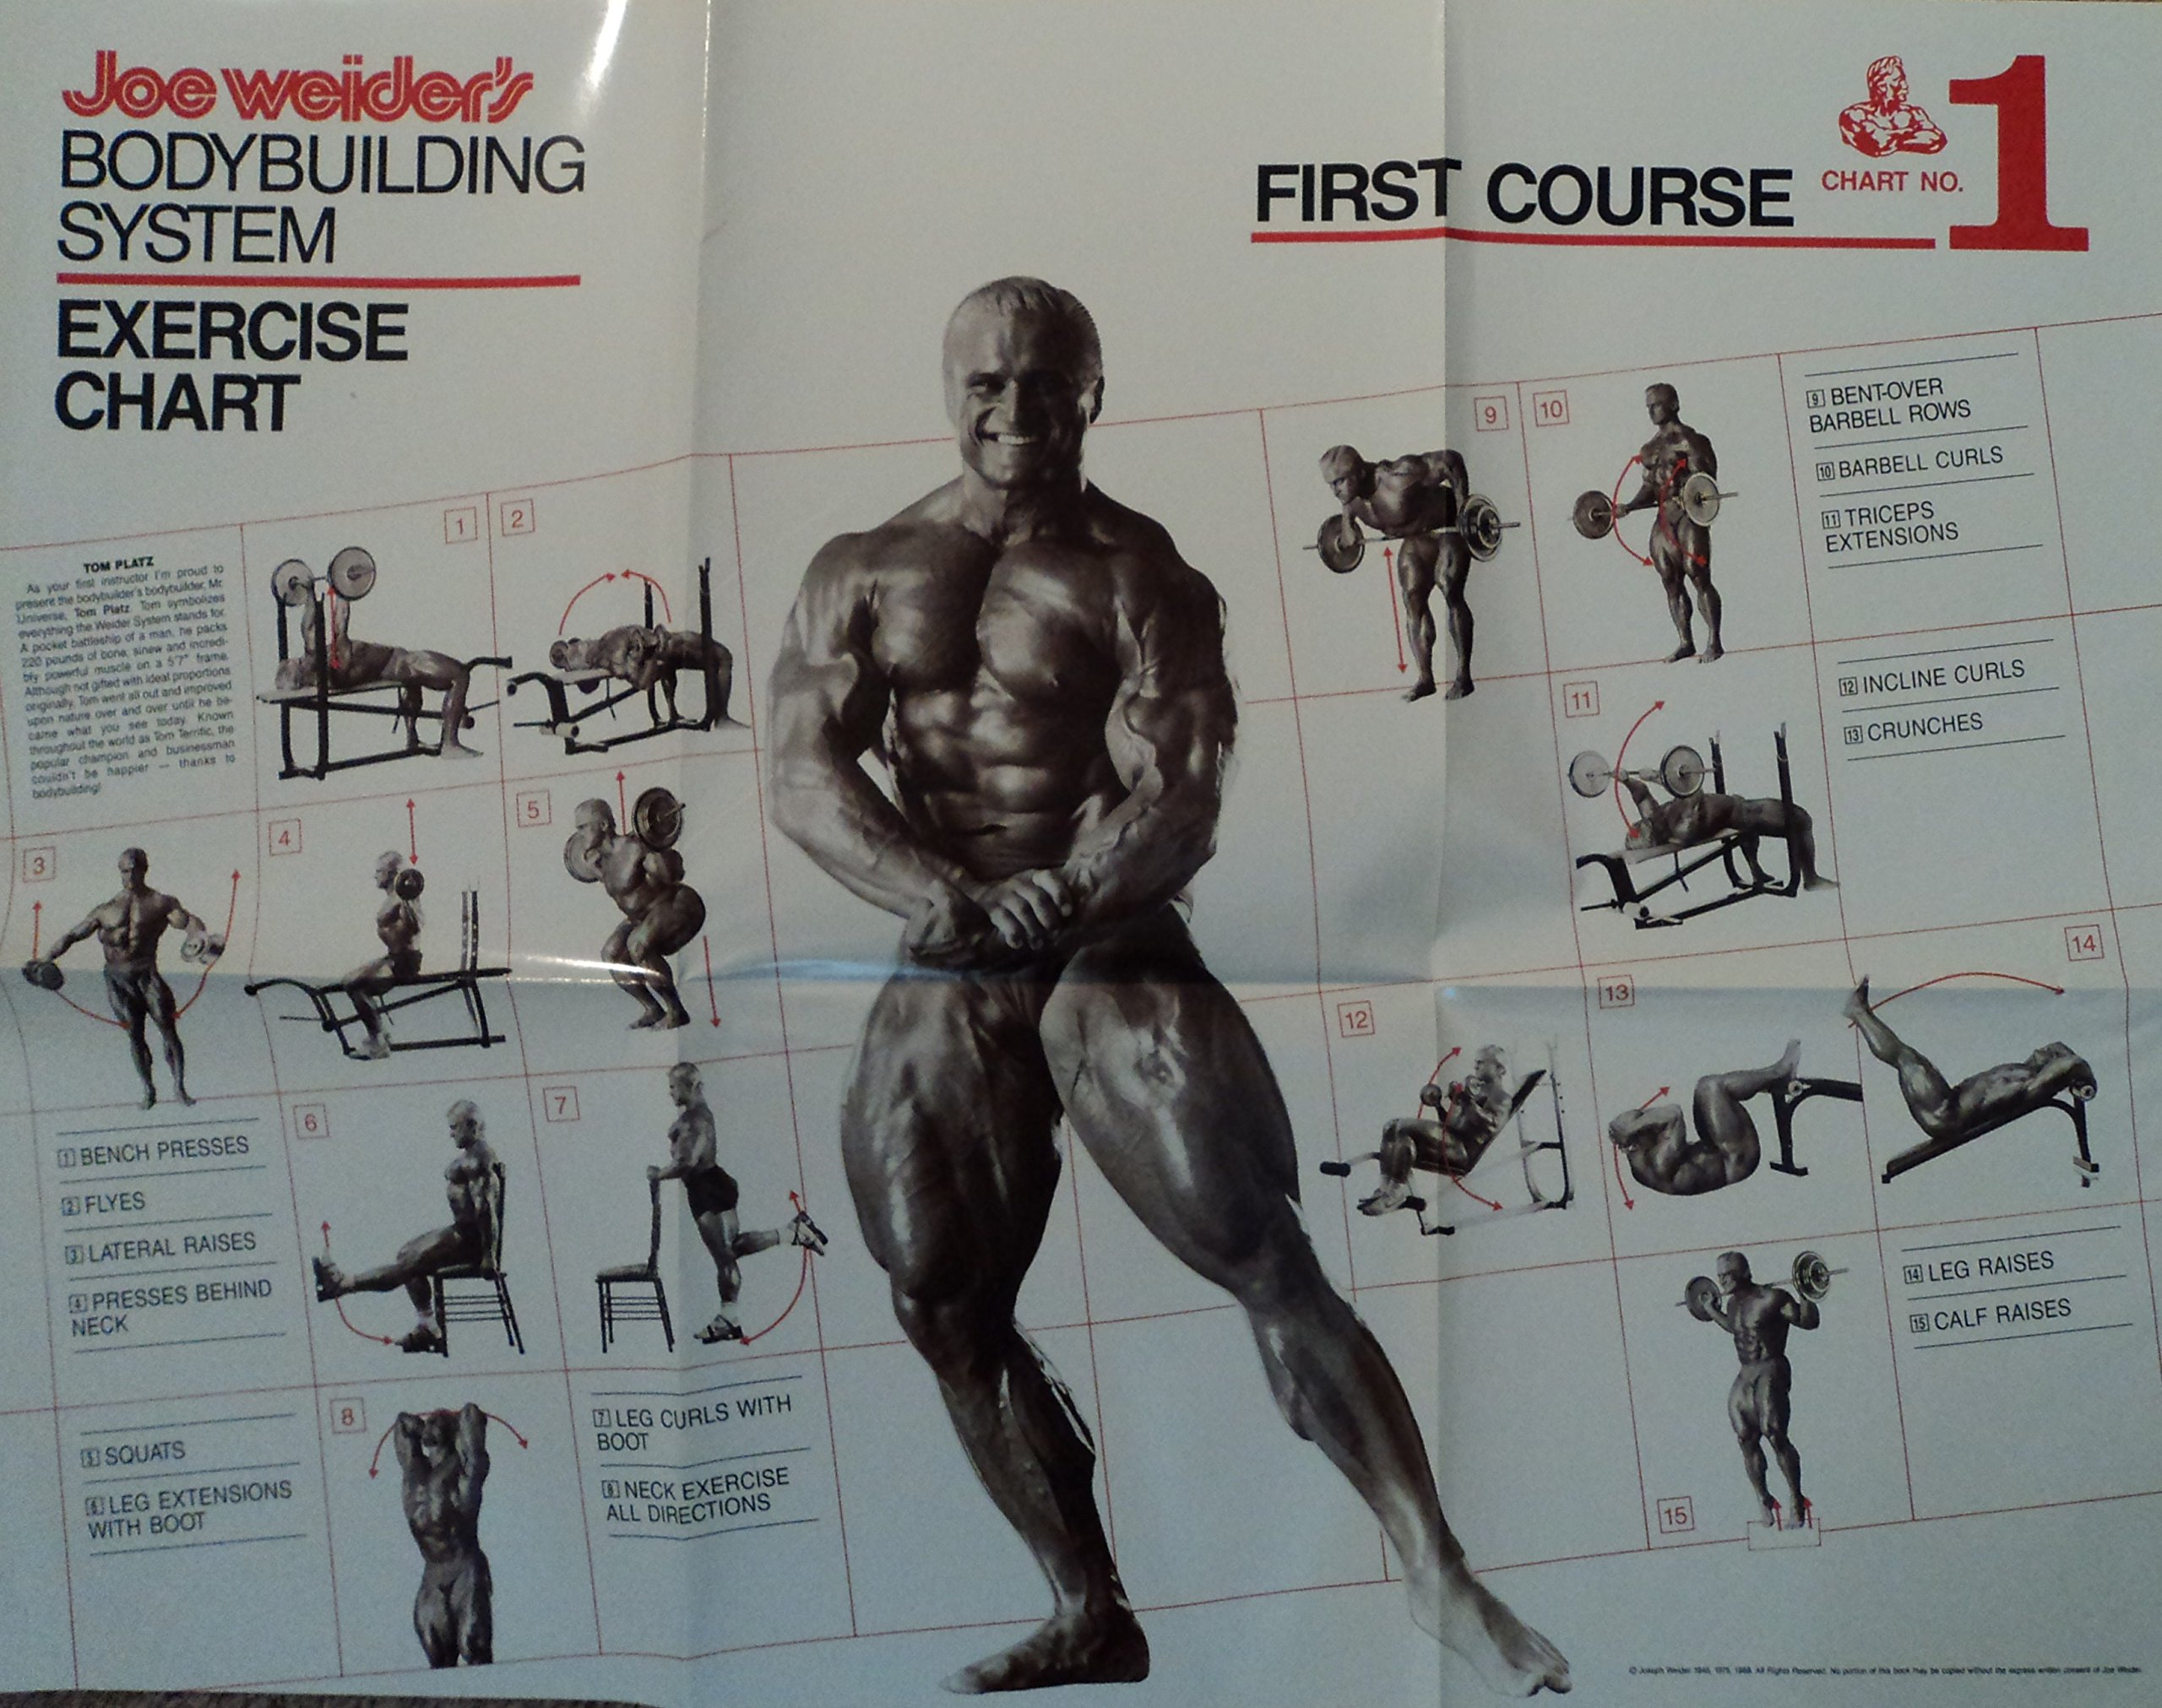 Buy Joe Weider S Bodybuilding System Book Online At Low Prices In India Joe Weider S Bodybuilding System Reviews Ratings Amazon In